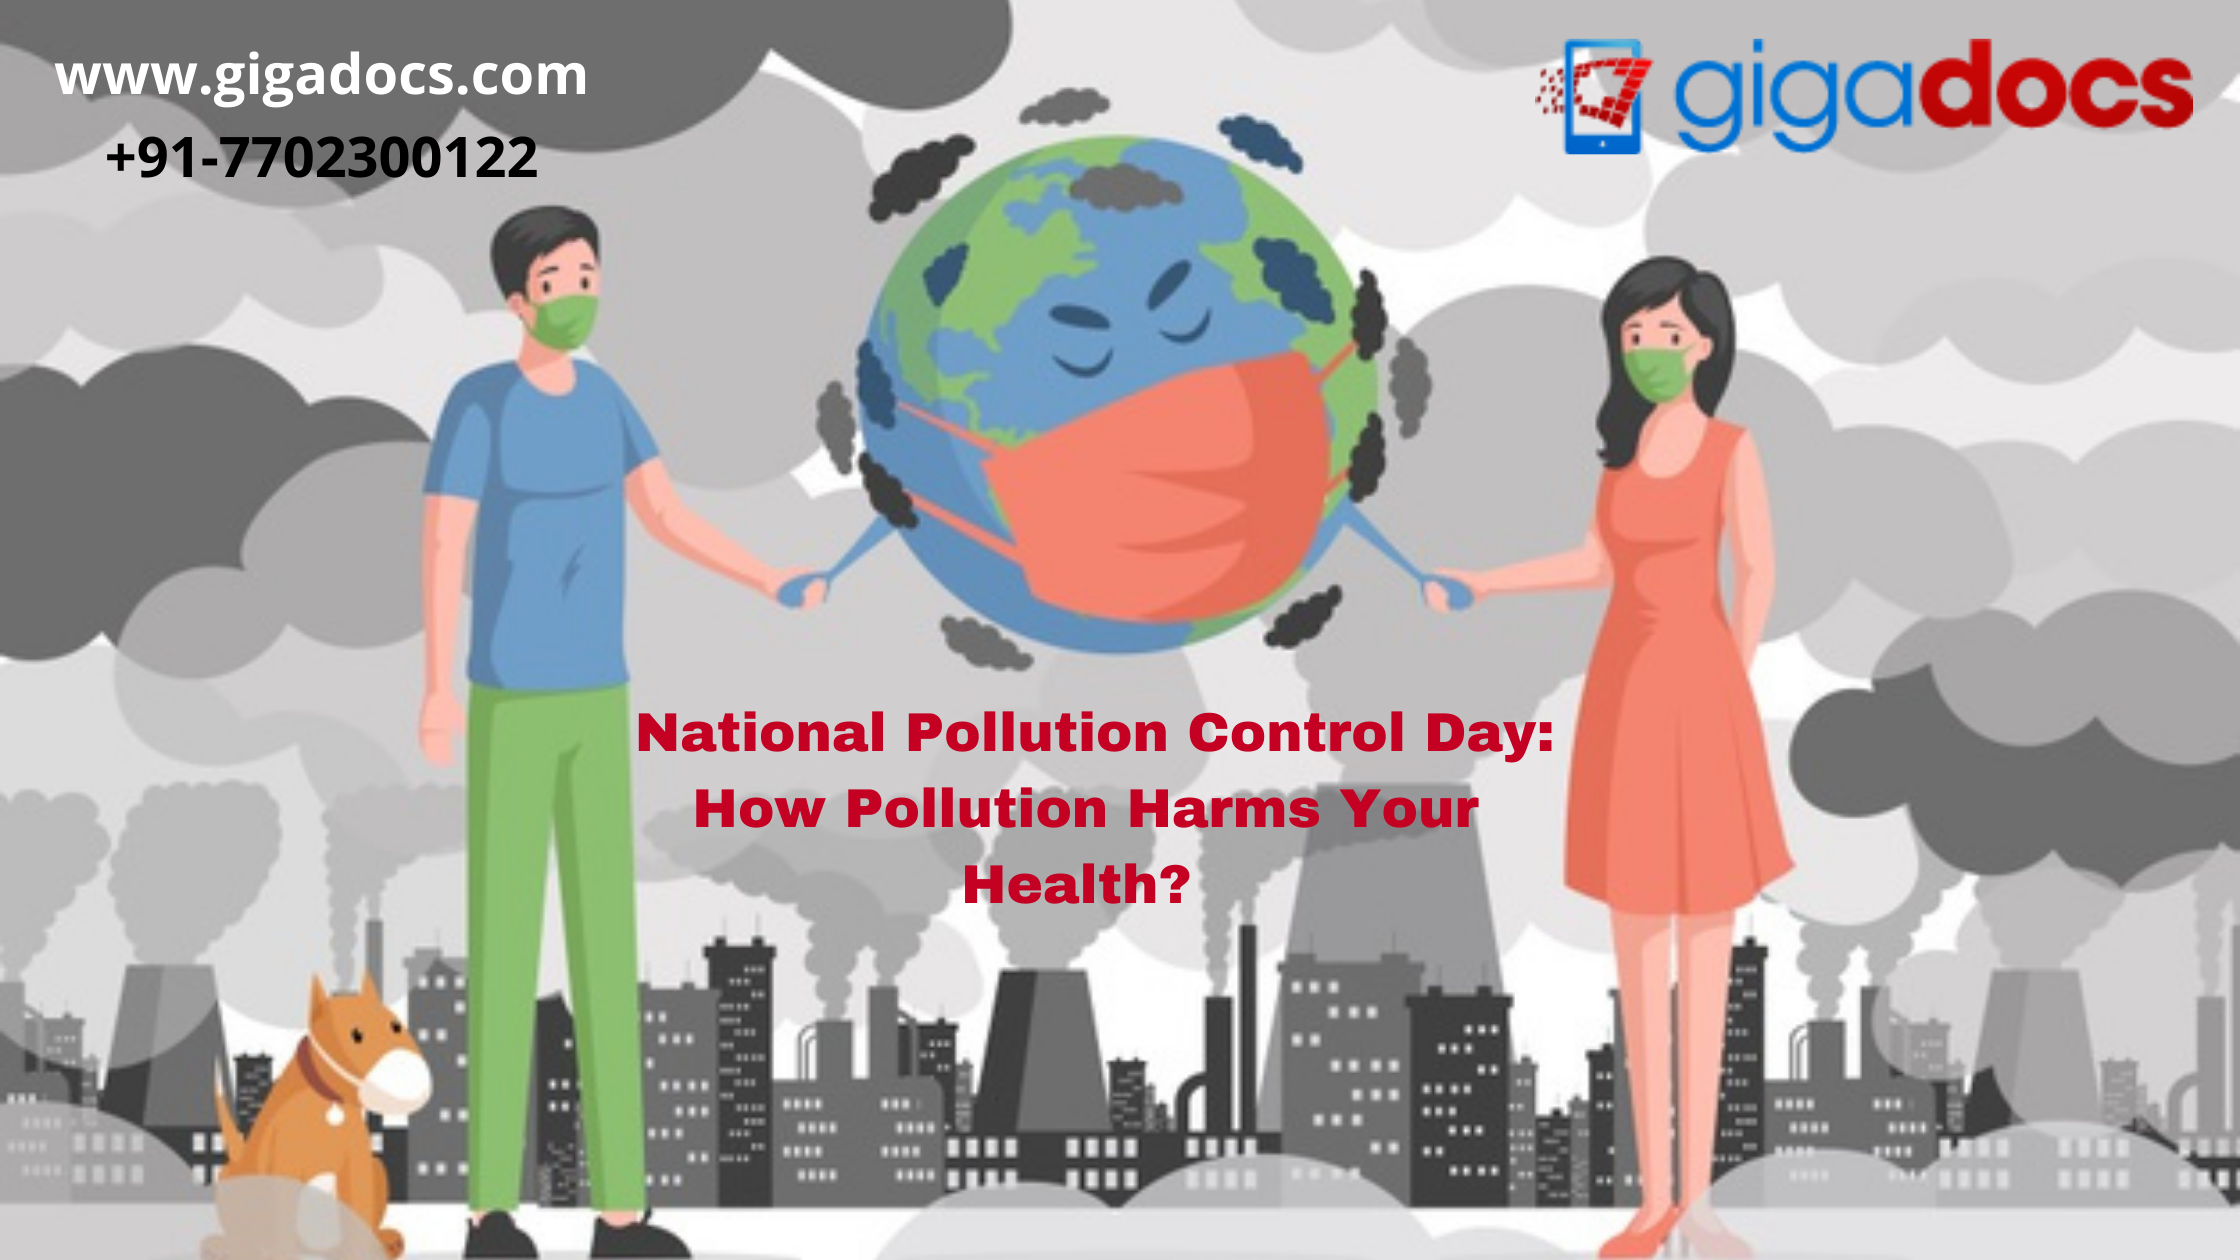 National Pollution Control Day: How Harmful is Pollution?